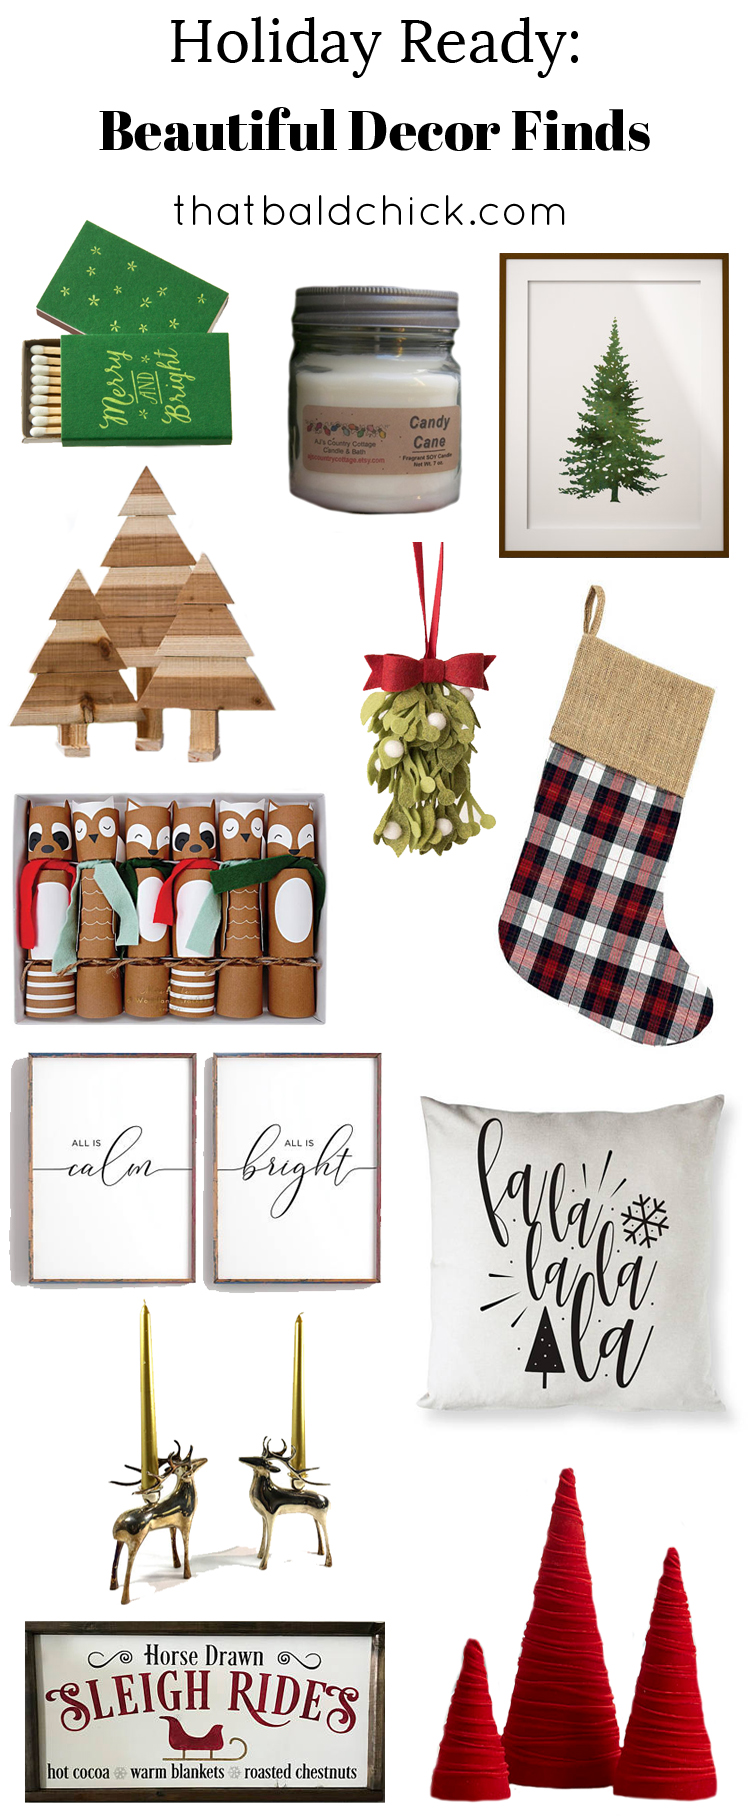 Holiday Home Finds at thatbaldchick.com